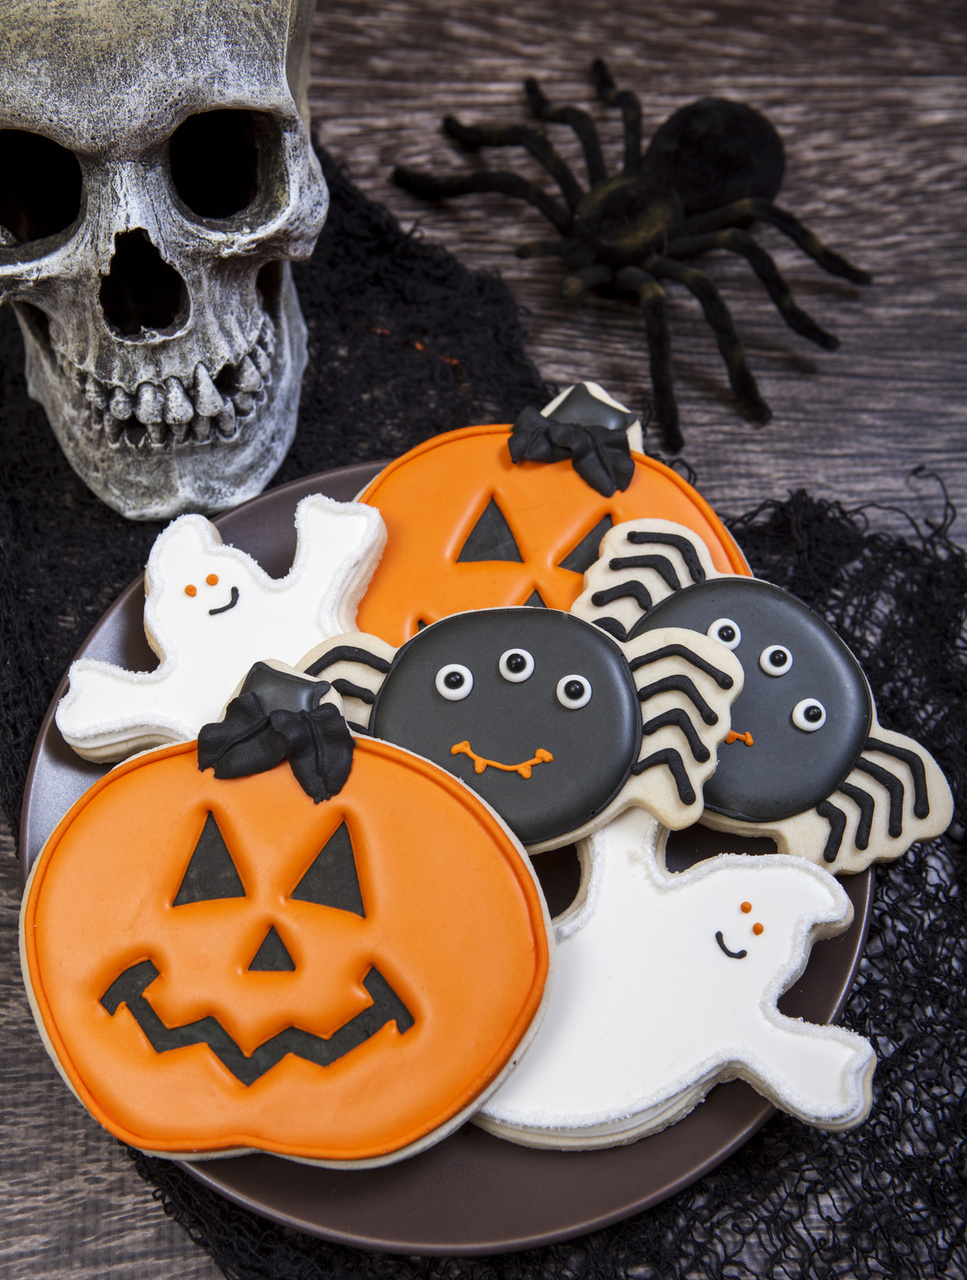 Spooky Cookie: Halloween Cookie Decorations